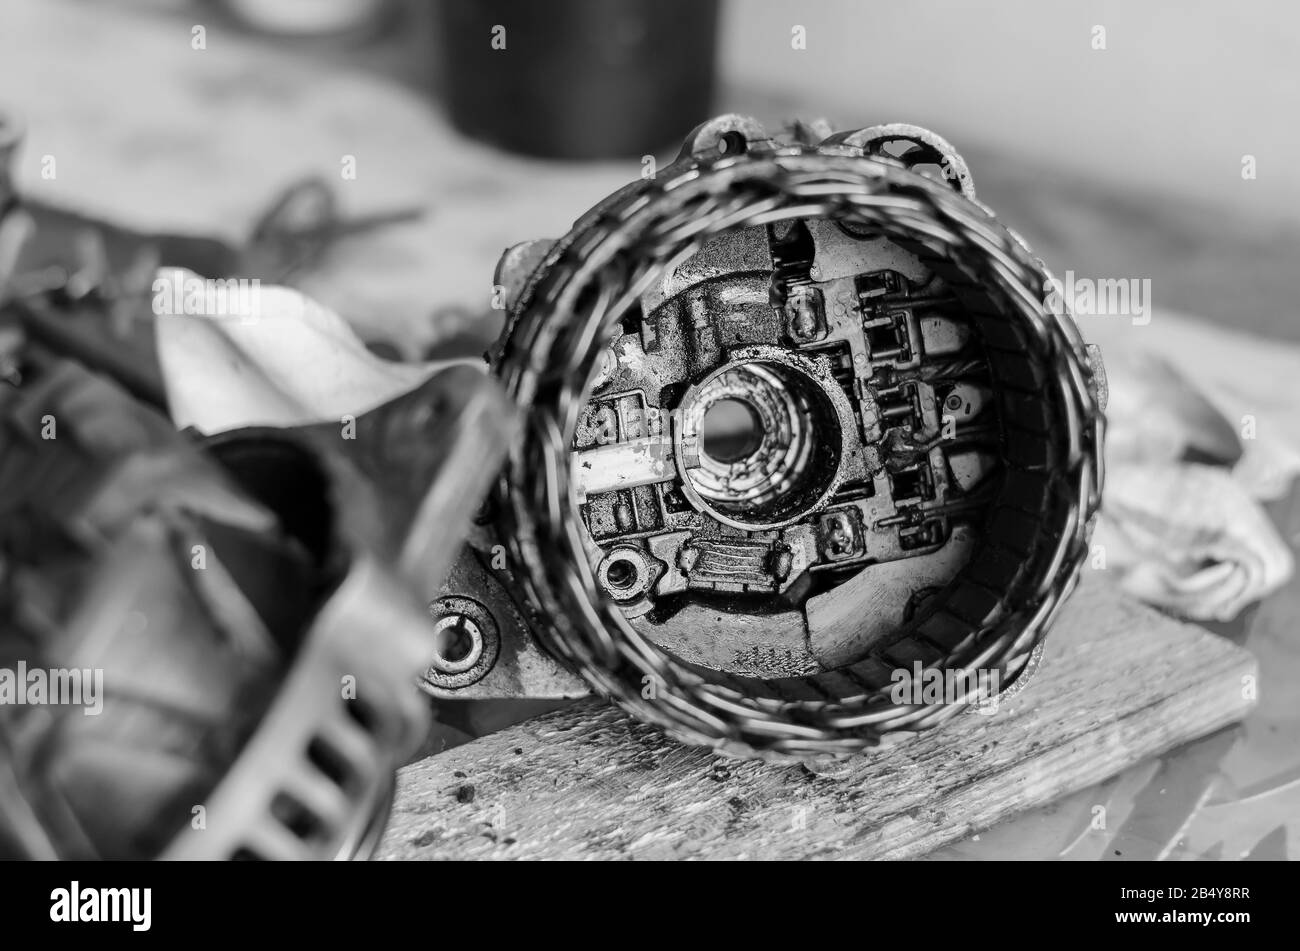 Dirty Rear Cover Of A Car Alternator Diode Bridge And Current Collector Brushes Repair Used Generator Auto Repair Shop Or Service Center Selective Stock Photo Alamy